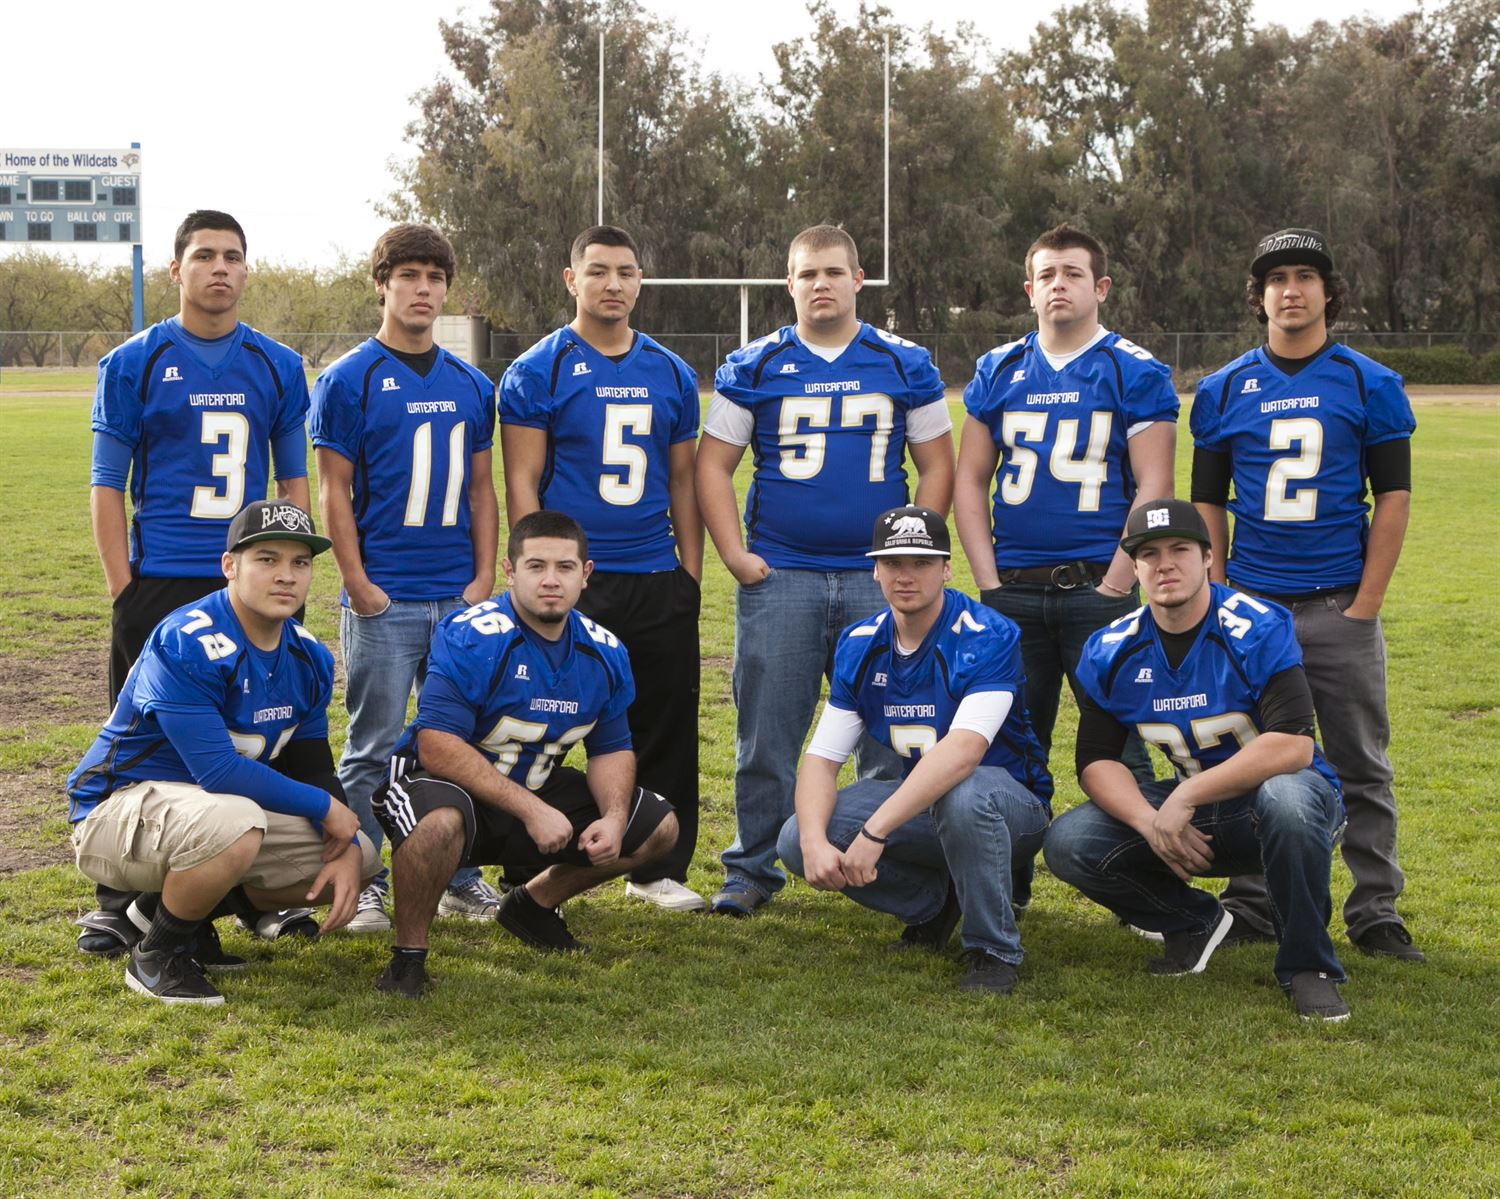 Waterford High School - Boys Varsity Football